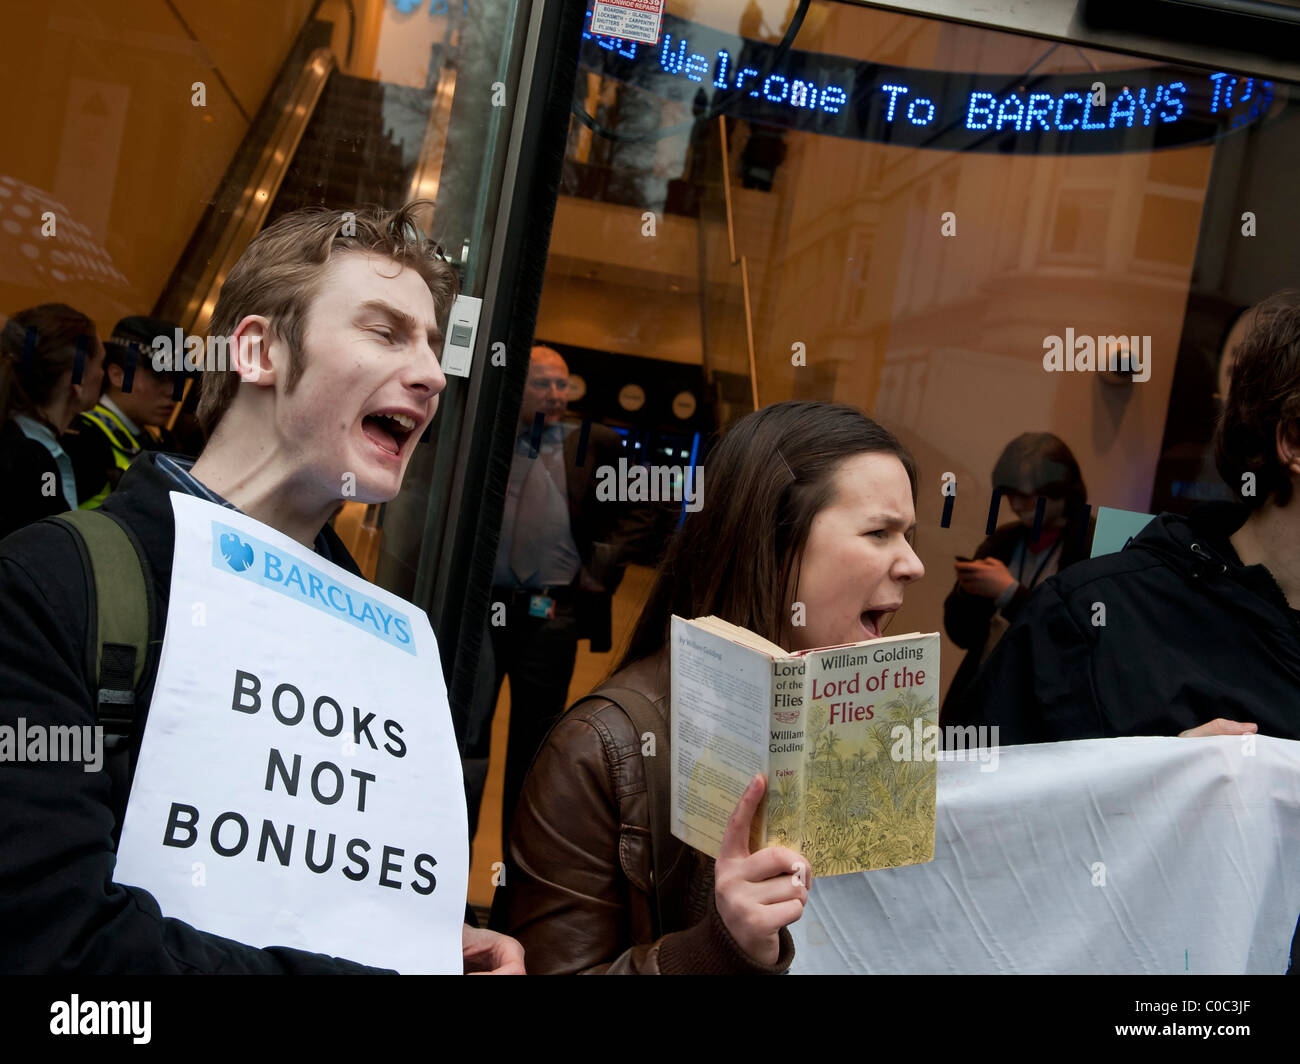 UK Uncut organise a protest against Barclays Bank in London, closing several branches, because they pay so little - Stock Image